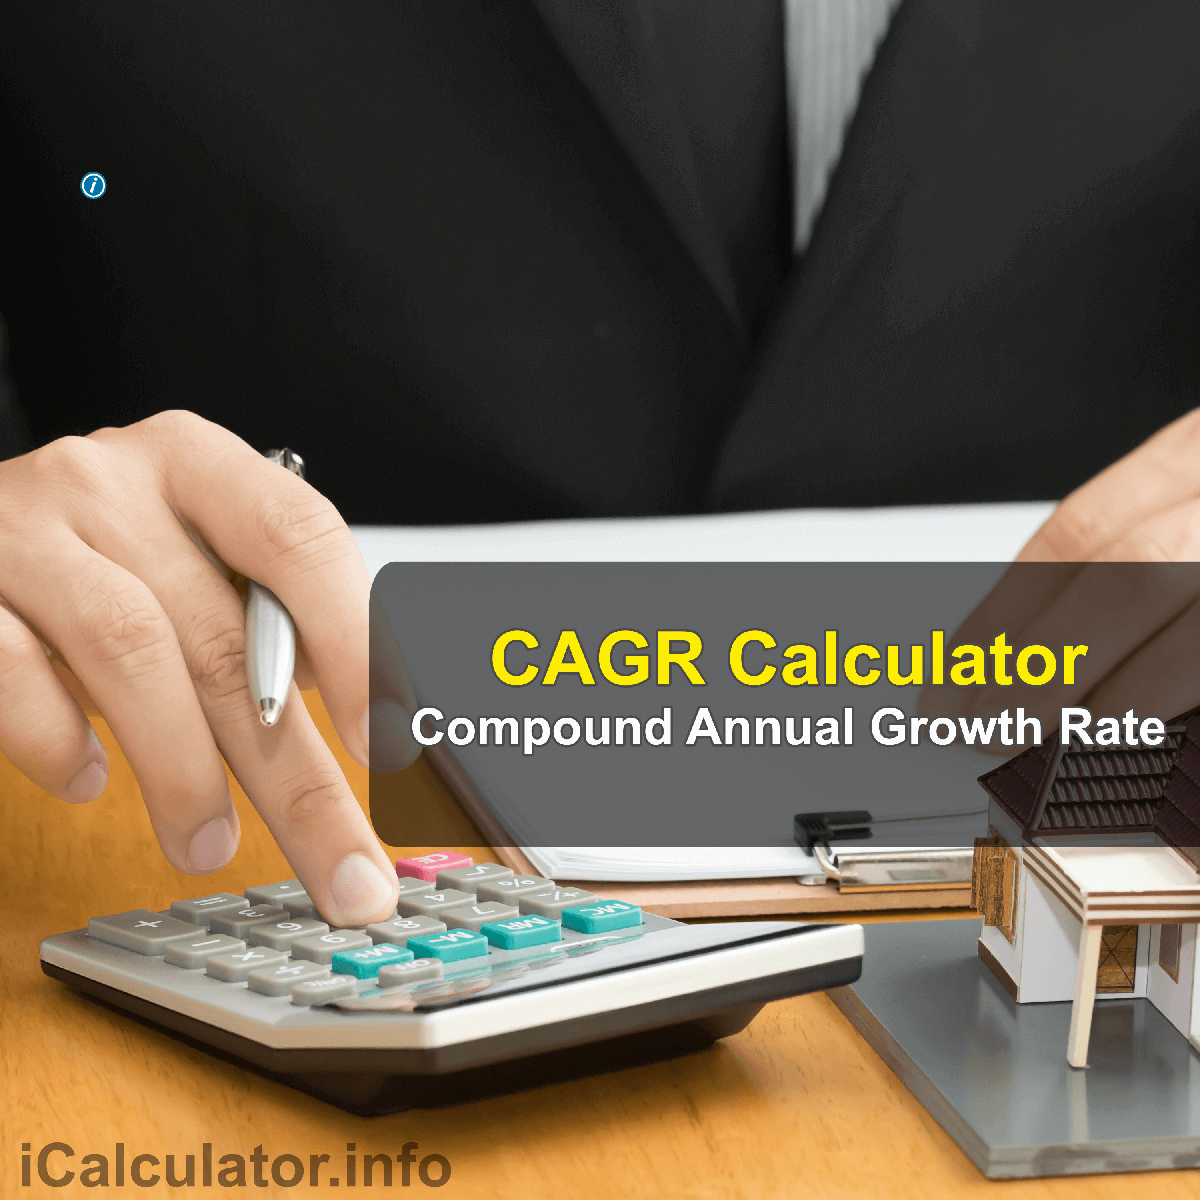 CAGR Calculator. This image provides details of how to calculate the compound annual growth rate using a good calculator, a pencil and paper. By using the Compound Annual Growth Rate formula, the CAGR Calculator provides a true calculation of the annual growth rate on an investment whose value has fluctuated during the period of investment.